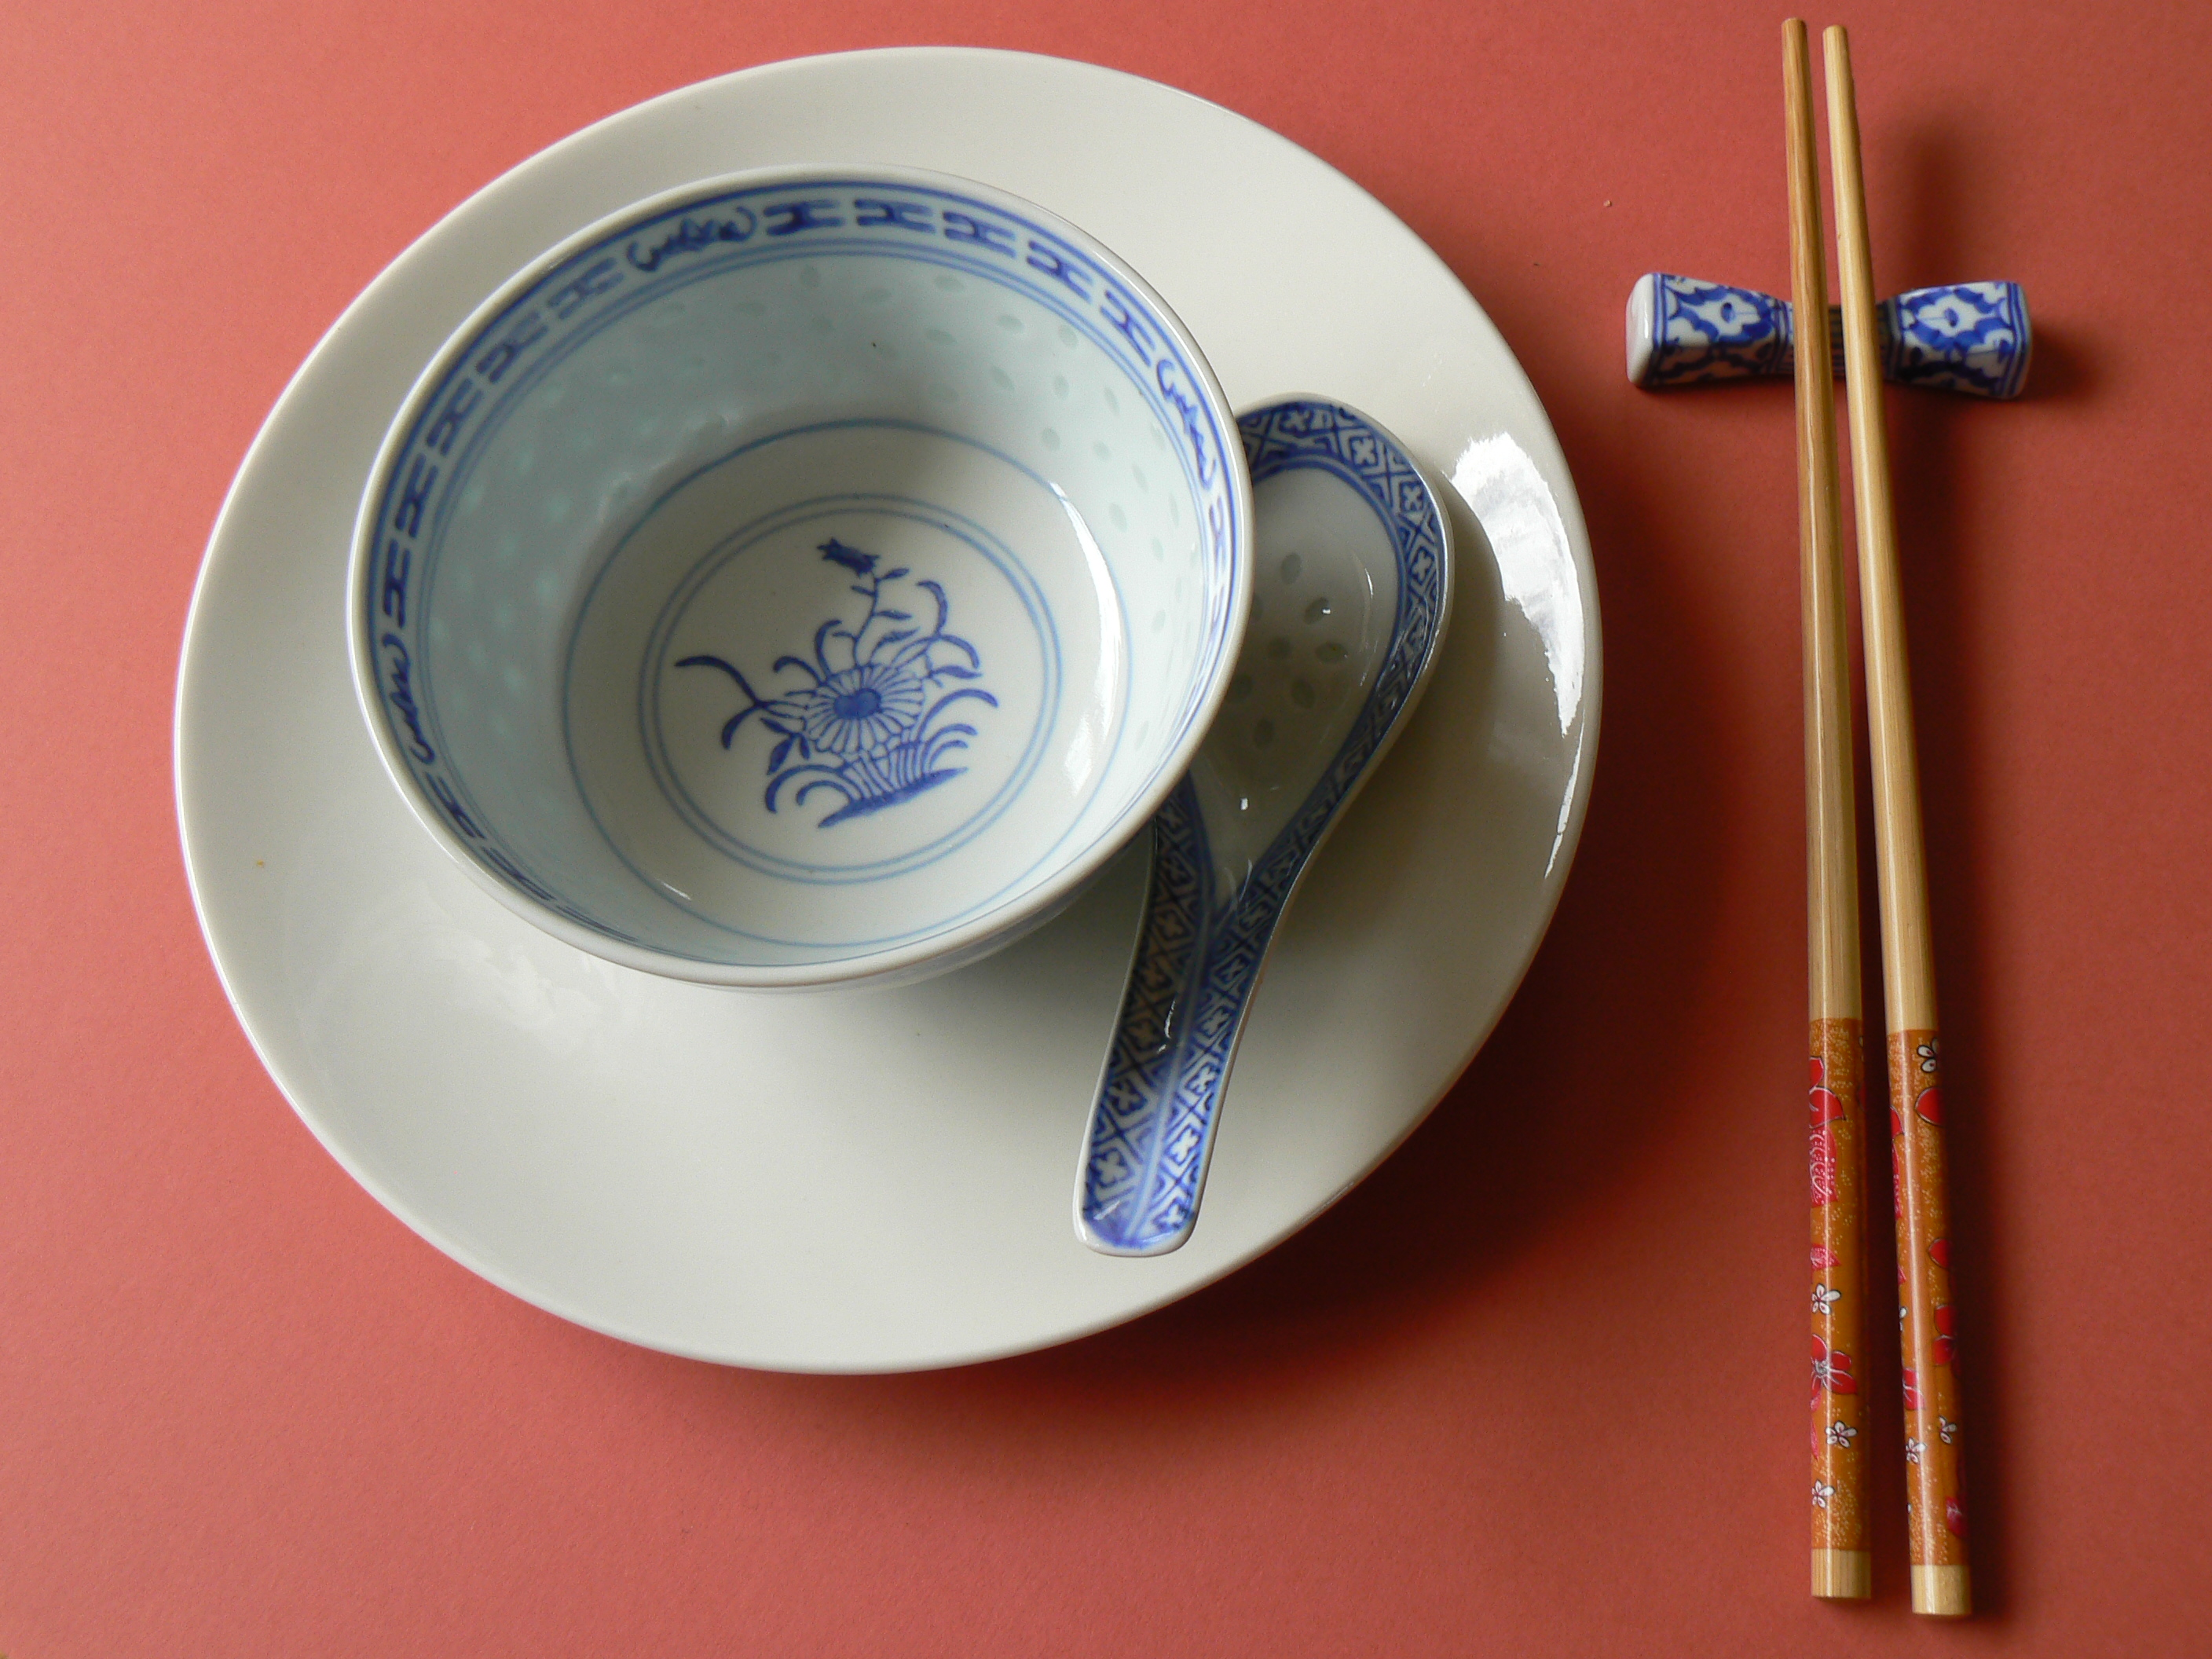 Bowl spoon and chopsticks